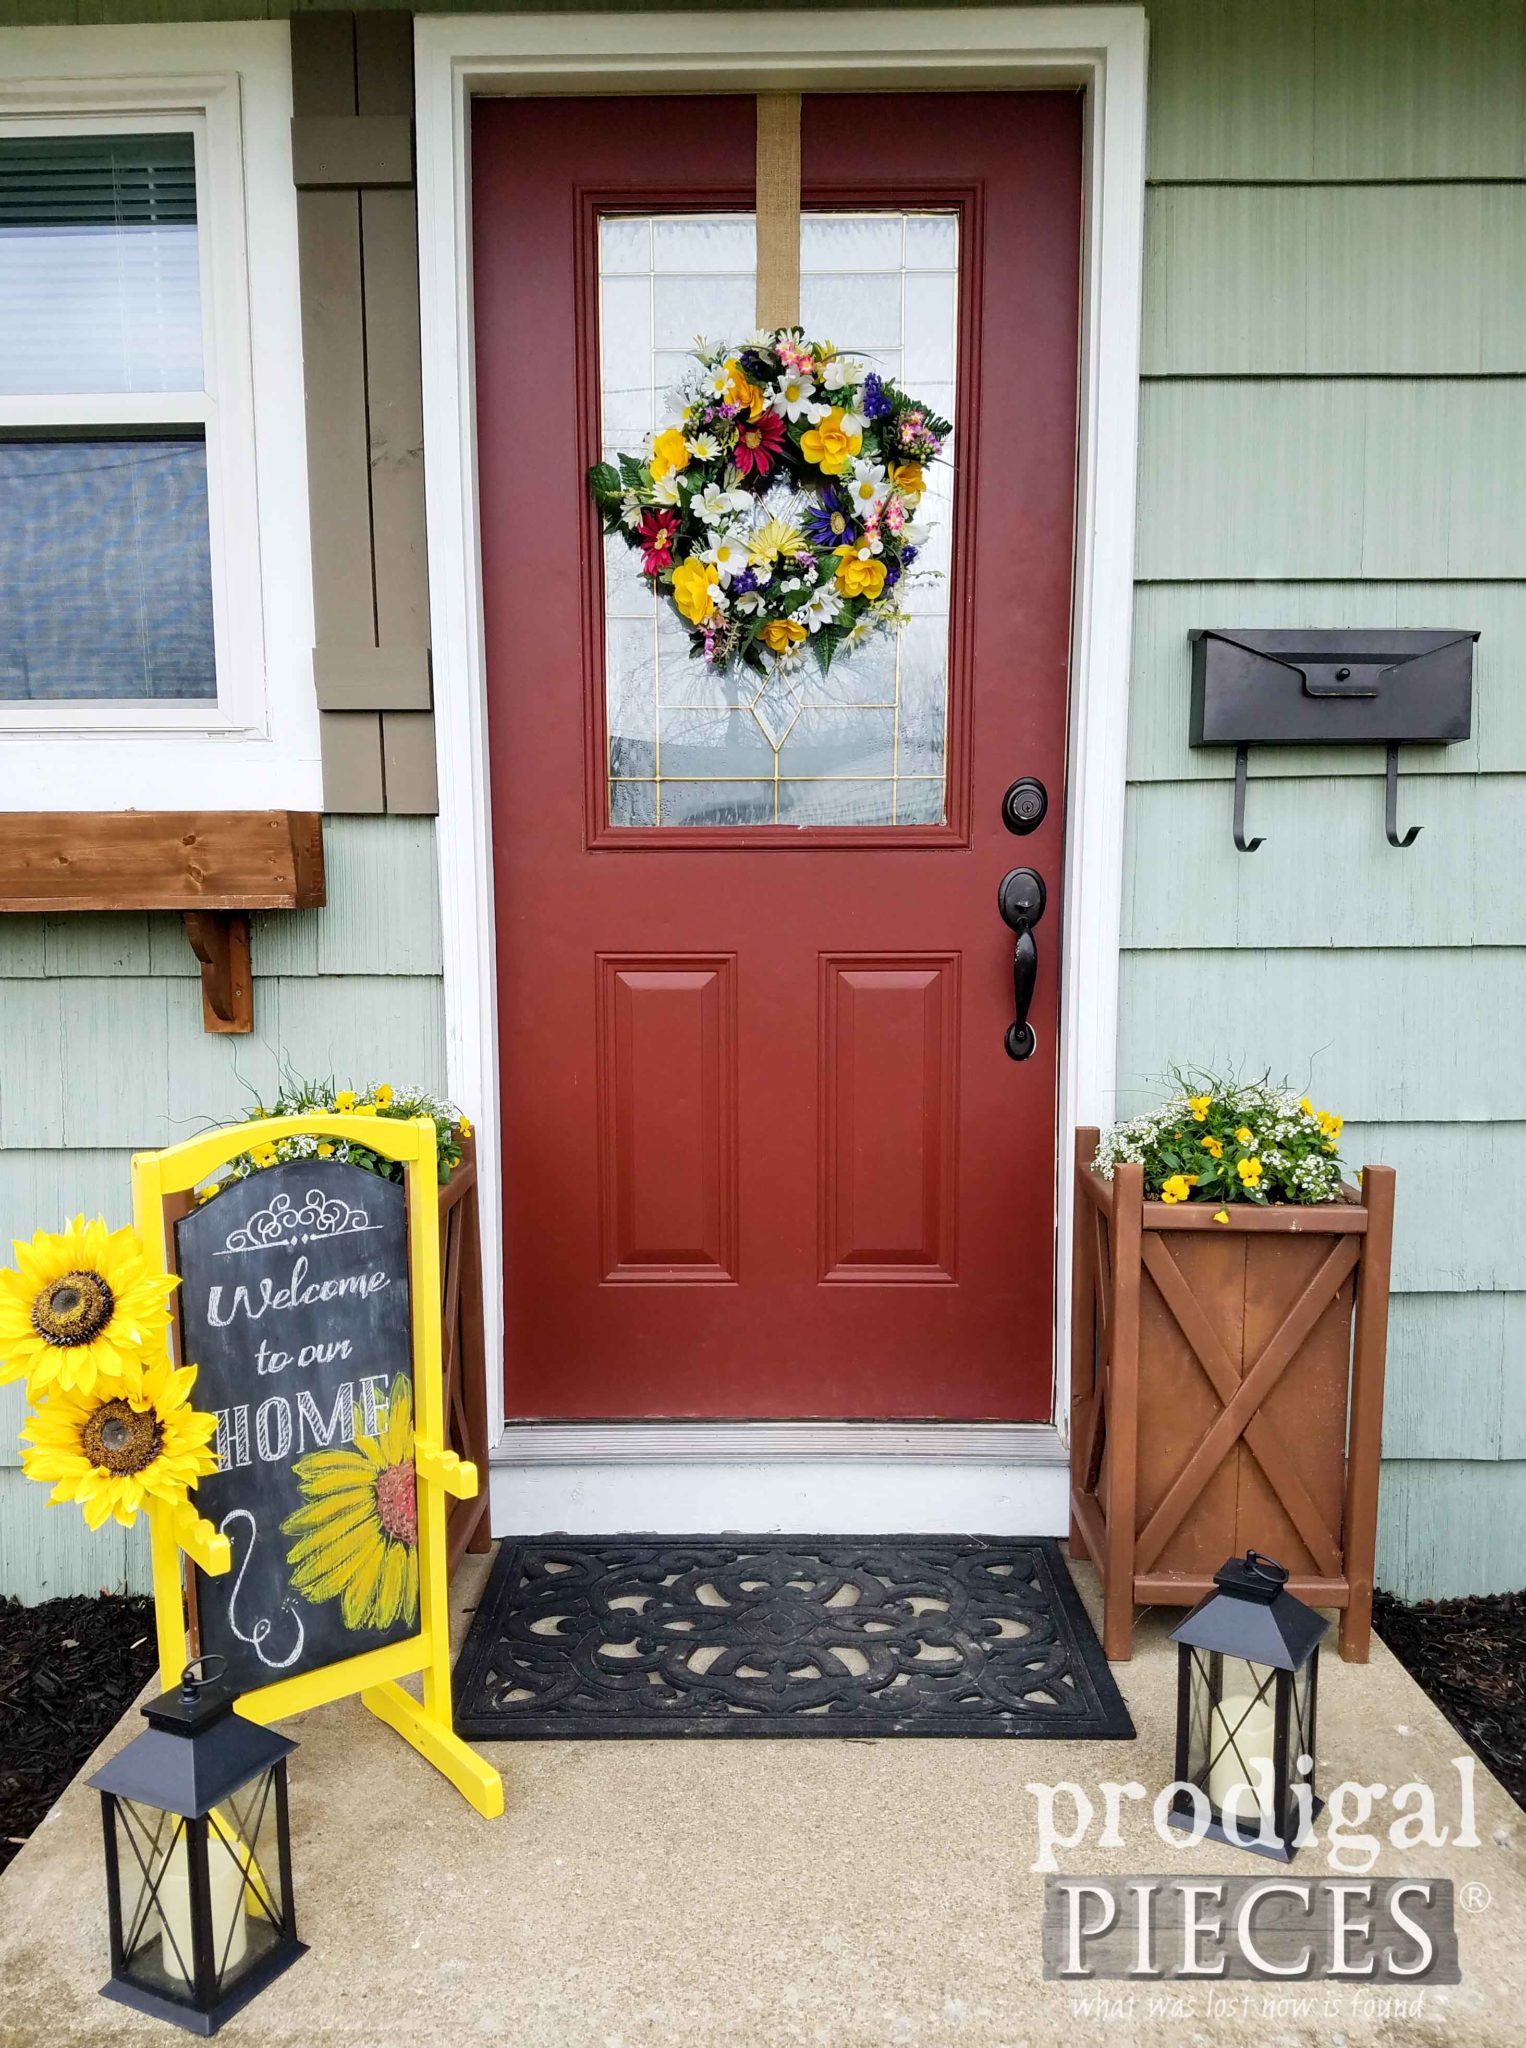 How to Decorate and Welcome Guests with a Spring Front Door using Upcycled Finds by Larissa of Prodigal Pieces | prodigalpieces.com